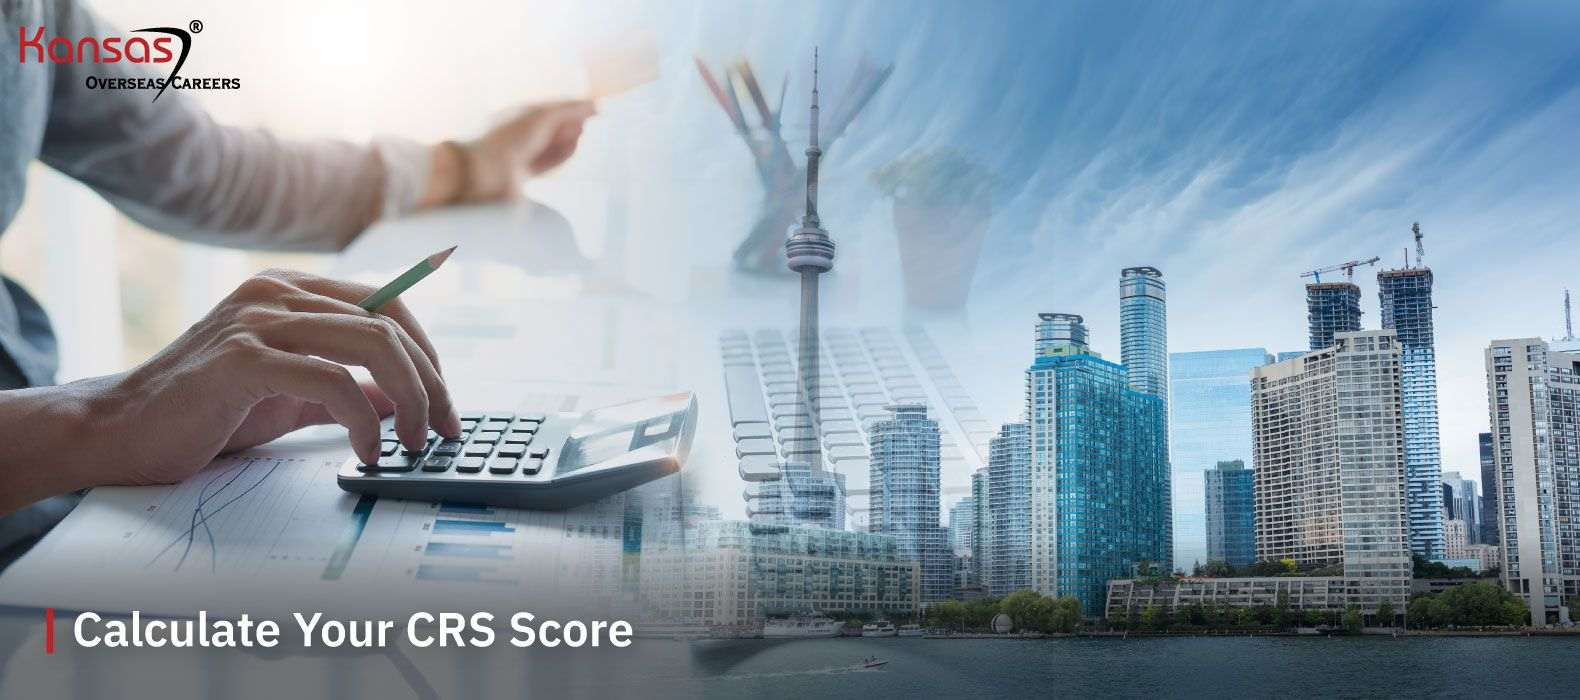 Calculate-Your-CRS-Score